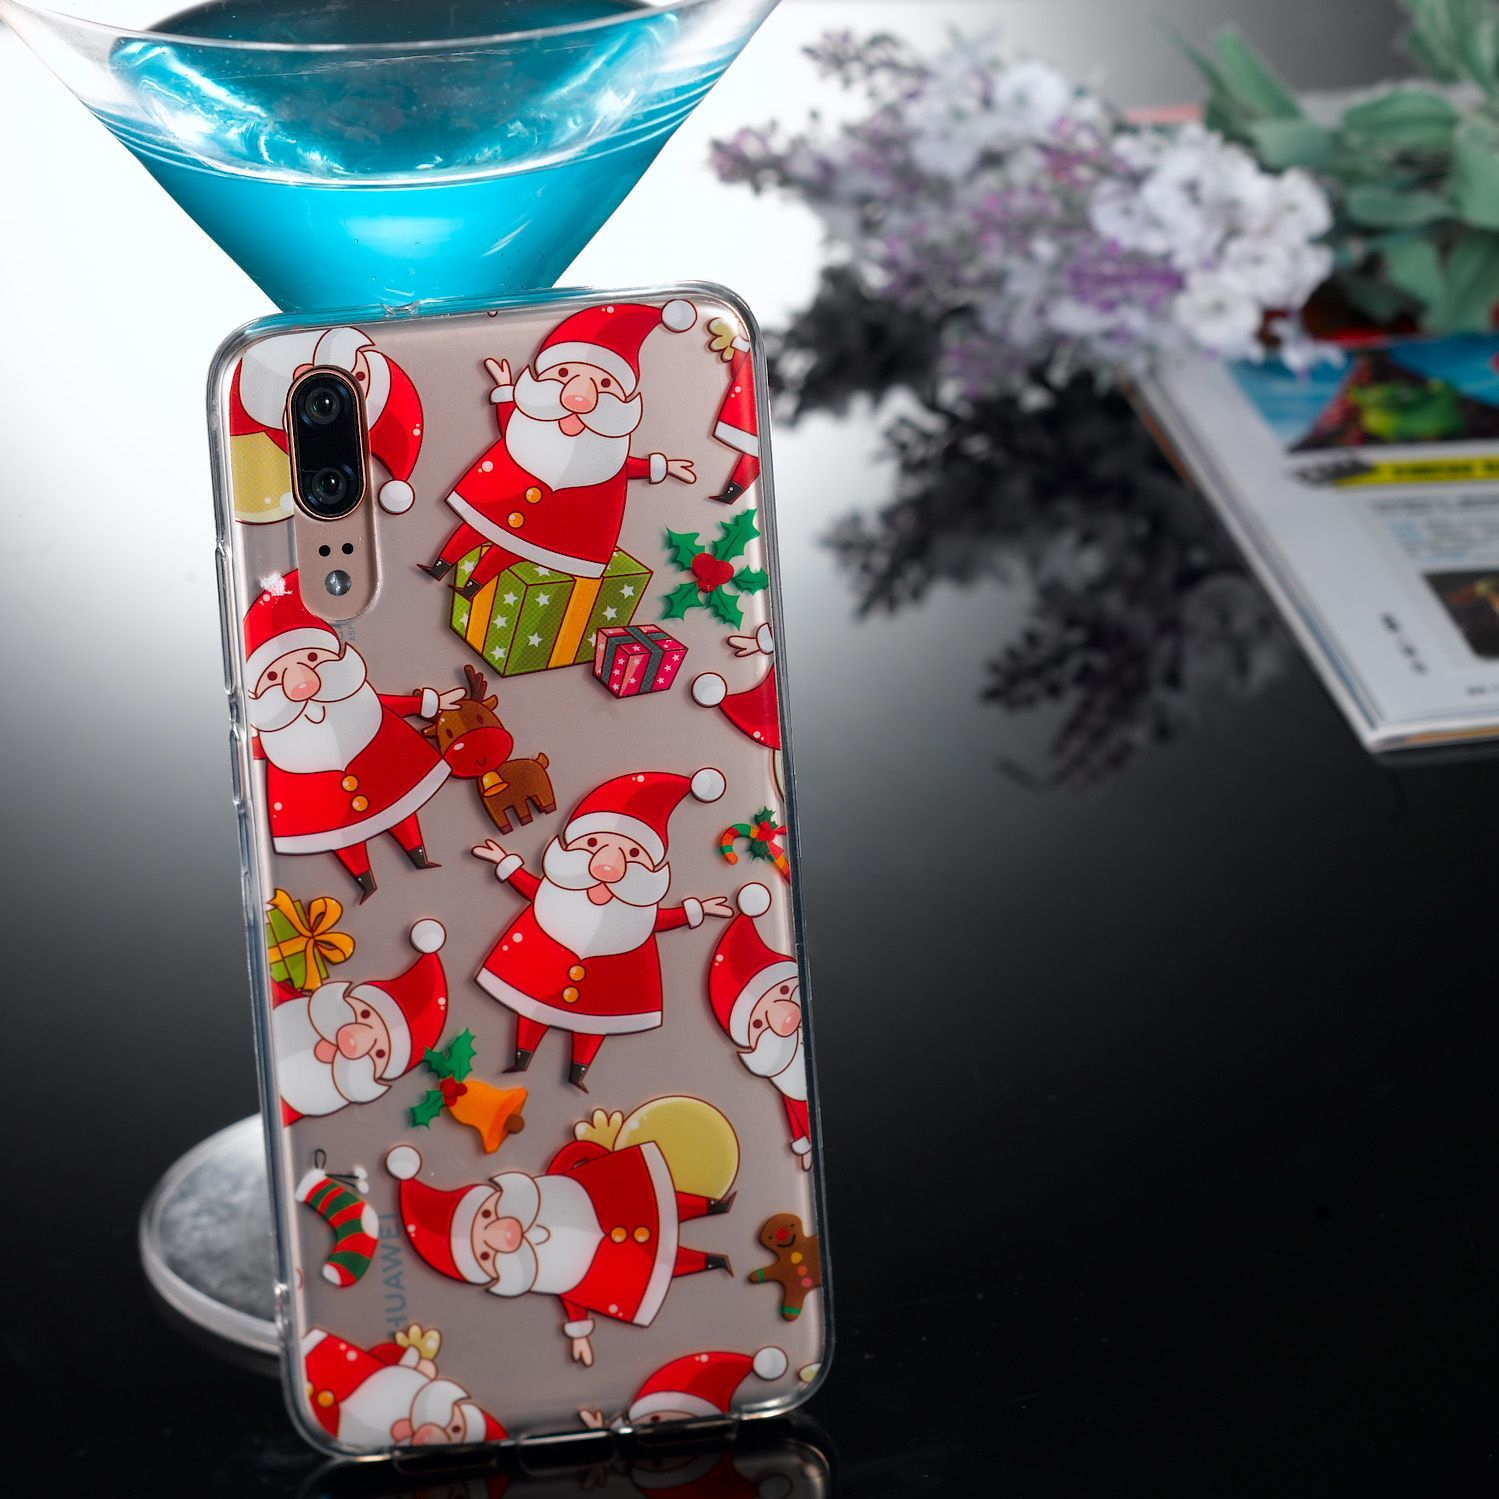 TPU Protective Phone Cover Soft Cute Cartoon Christmas Style Shell for Huawei P20